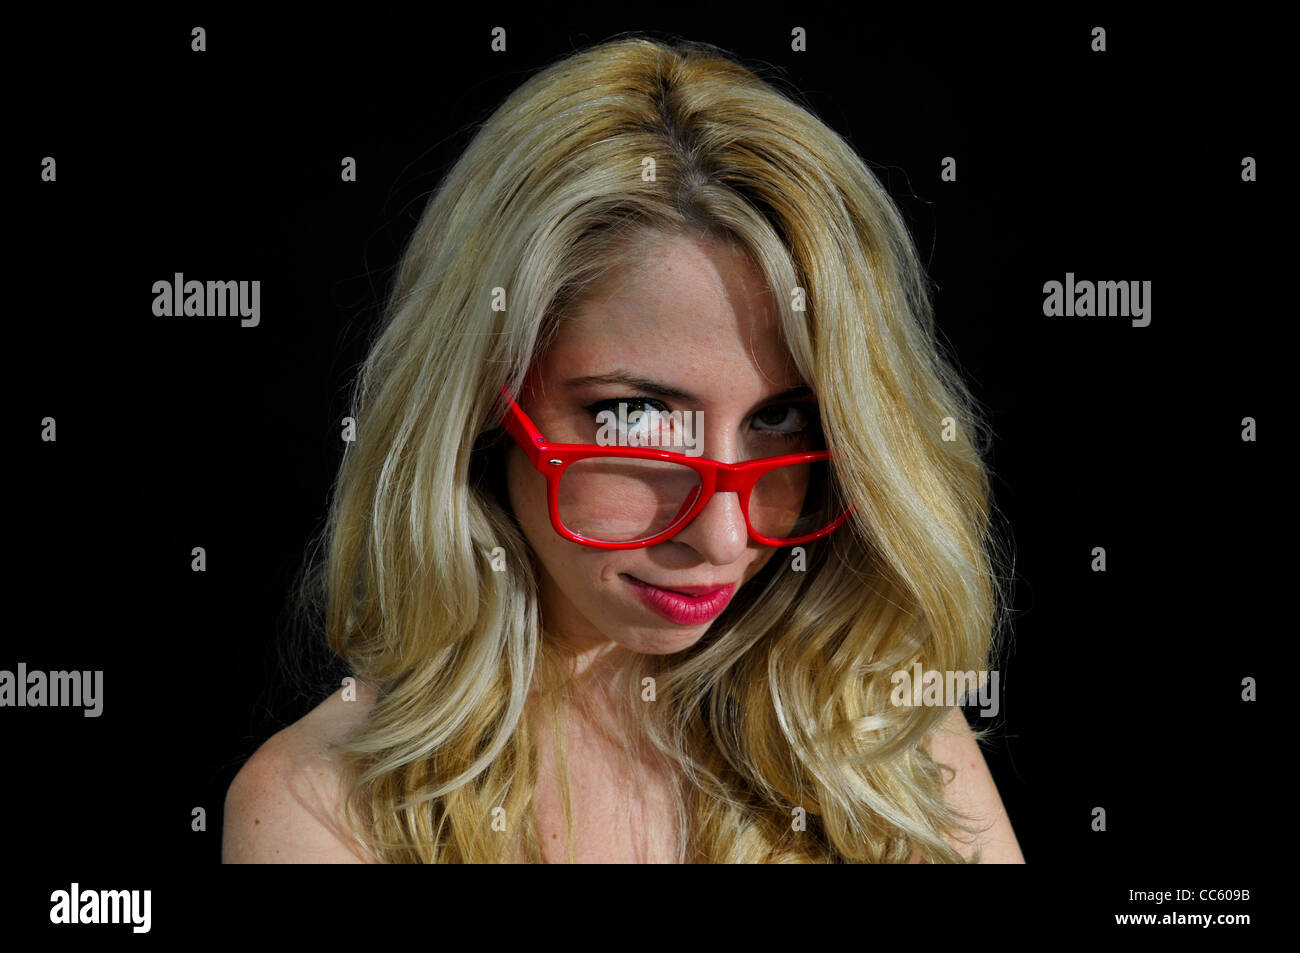 Intelligent blond woman with red glasses on black background - Stock Image